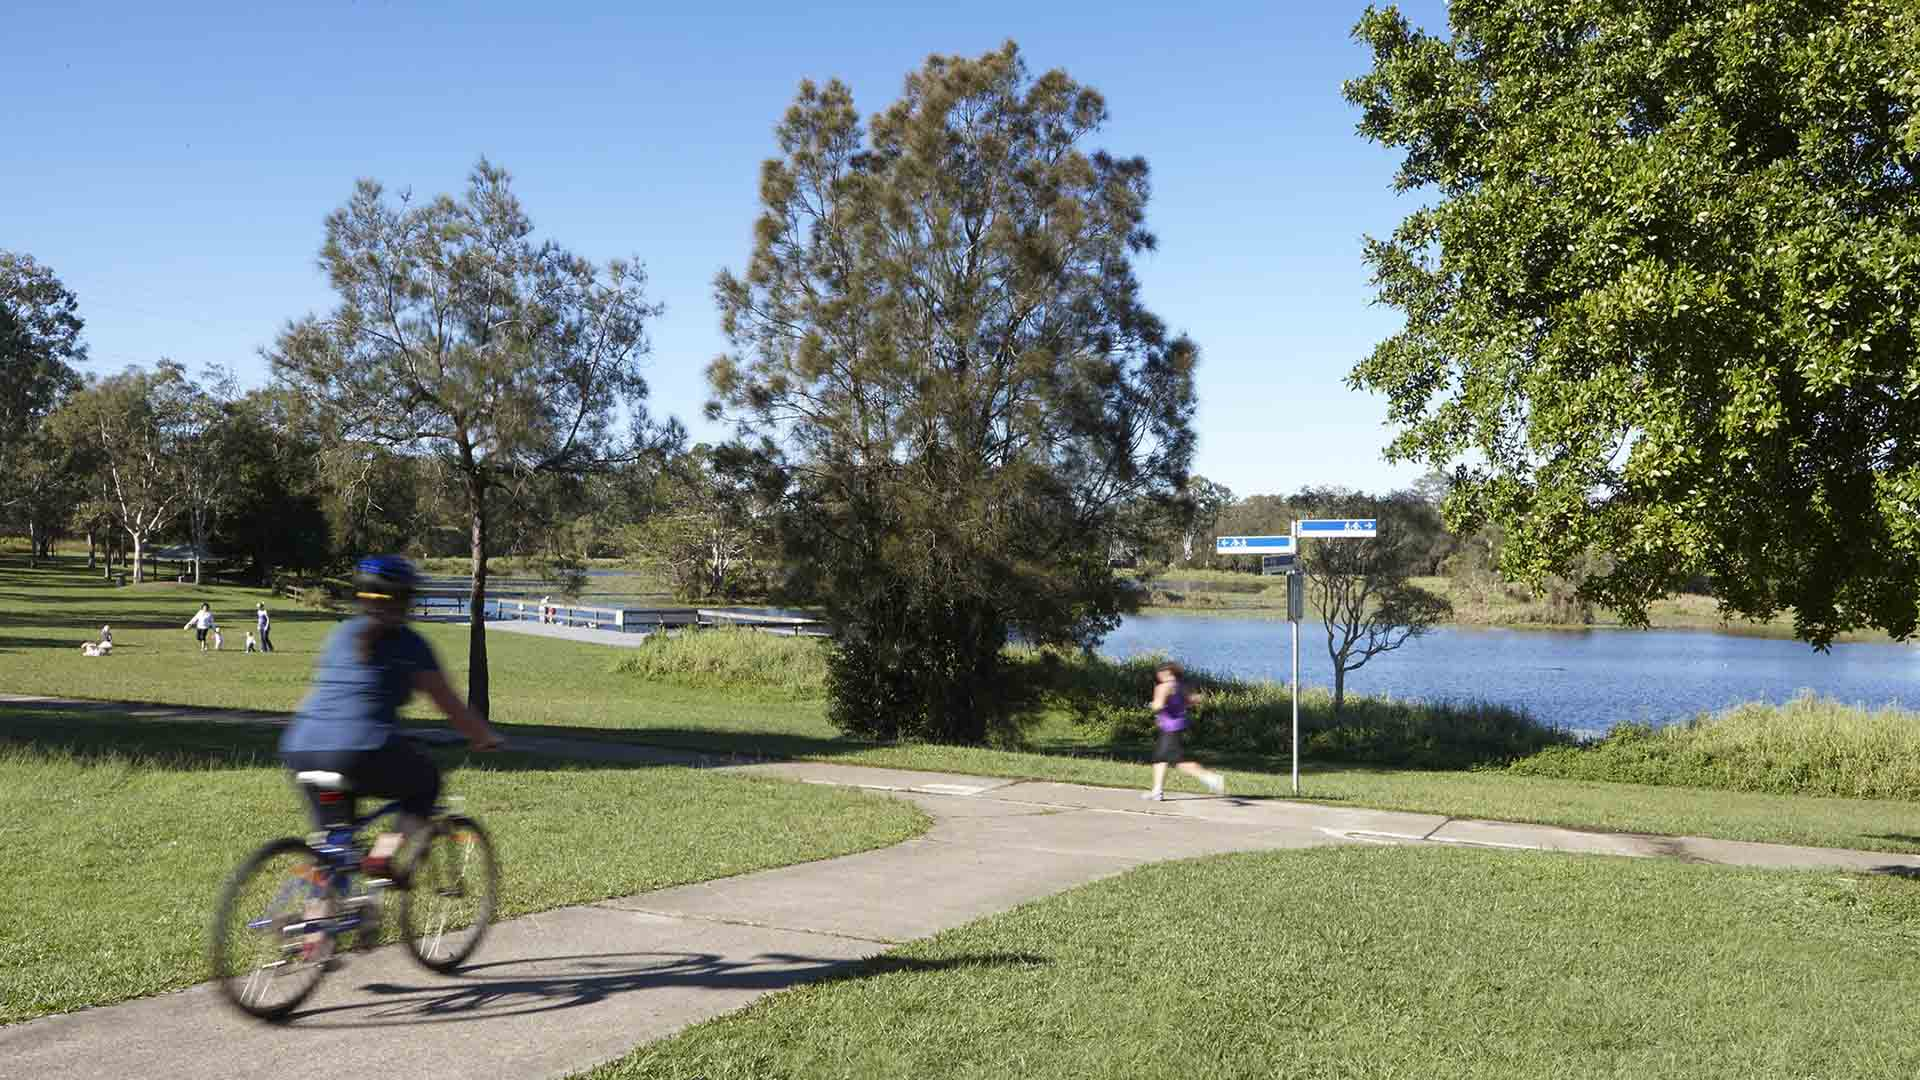 Eight Waterside Picnic Spots In and Around Brisbane That You Might Not Have Visited